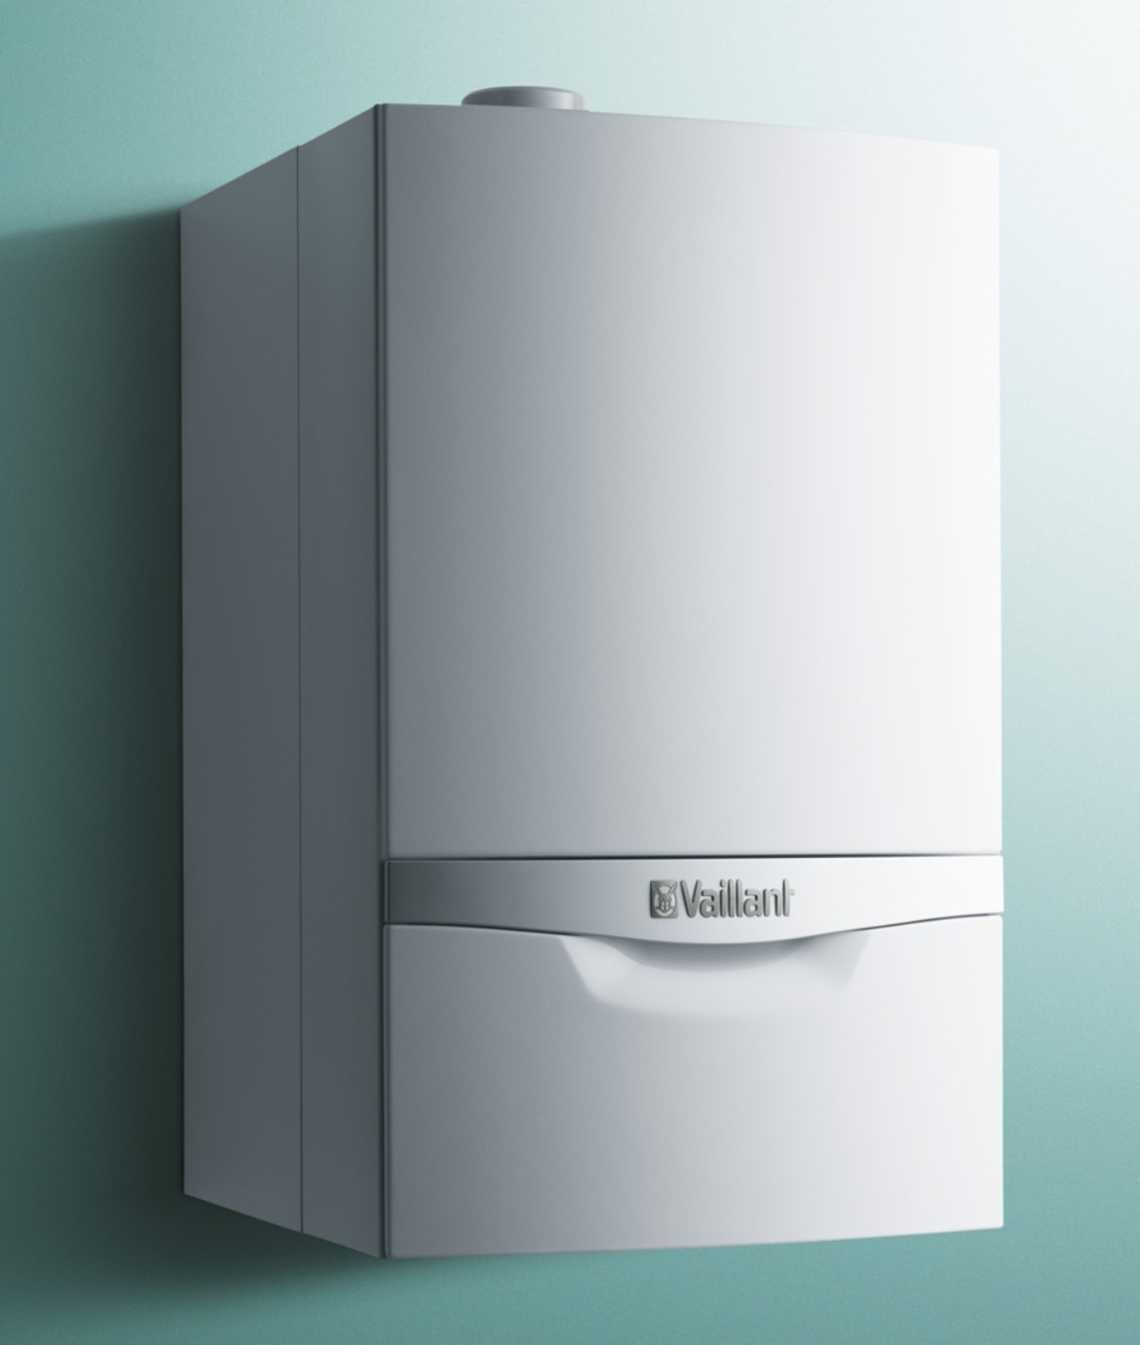 Газовий котел Vaillant ecoTEC Plus VU INT 346/5-5 H - Теплоцентр